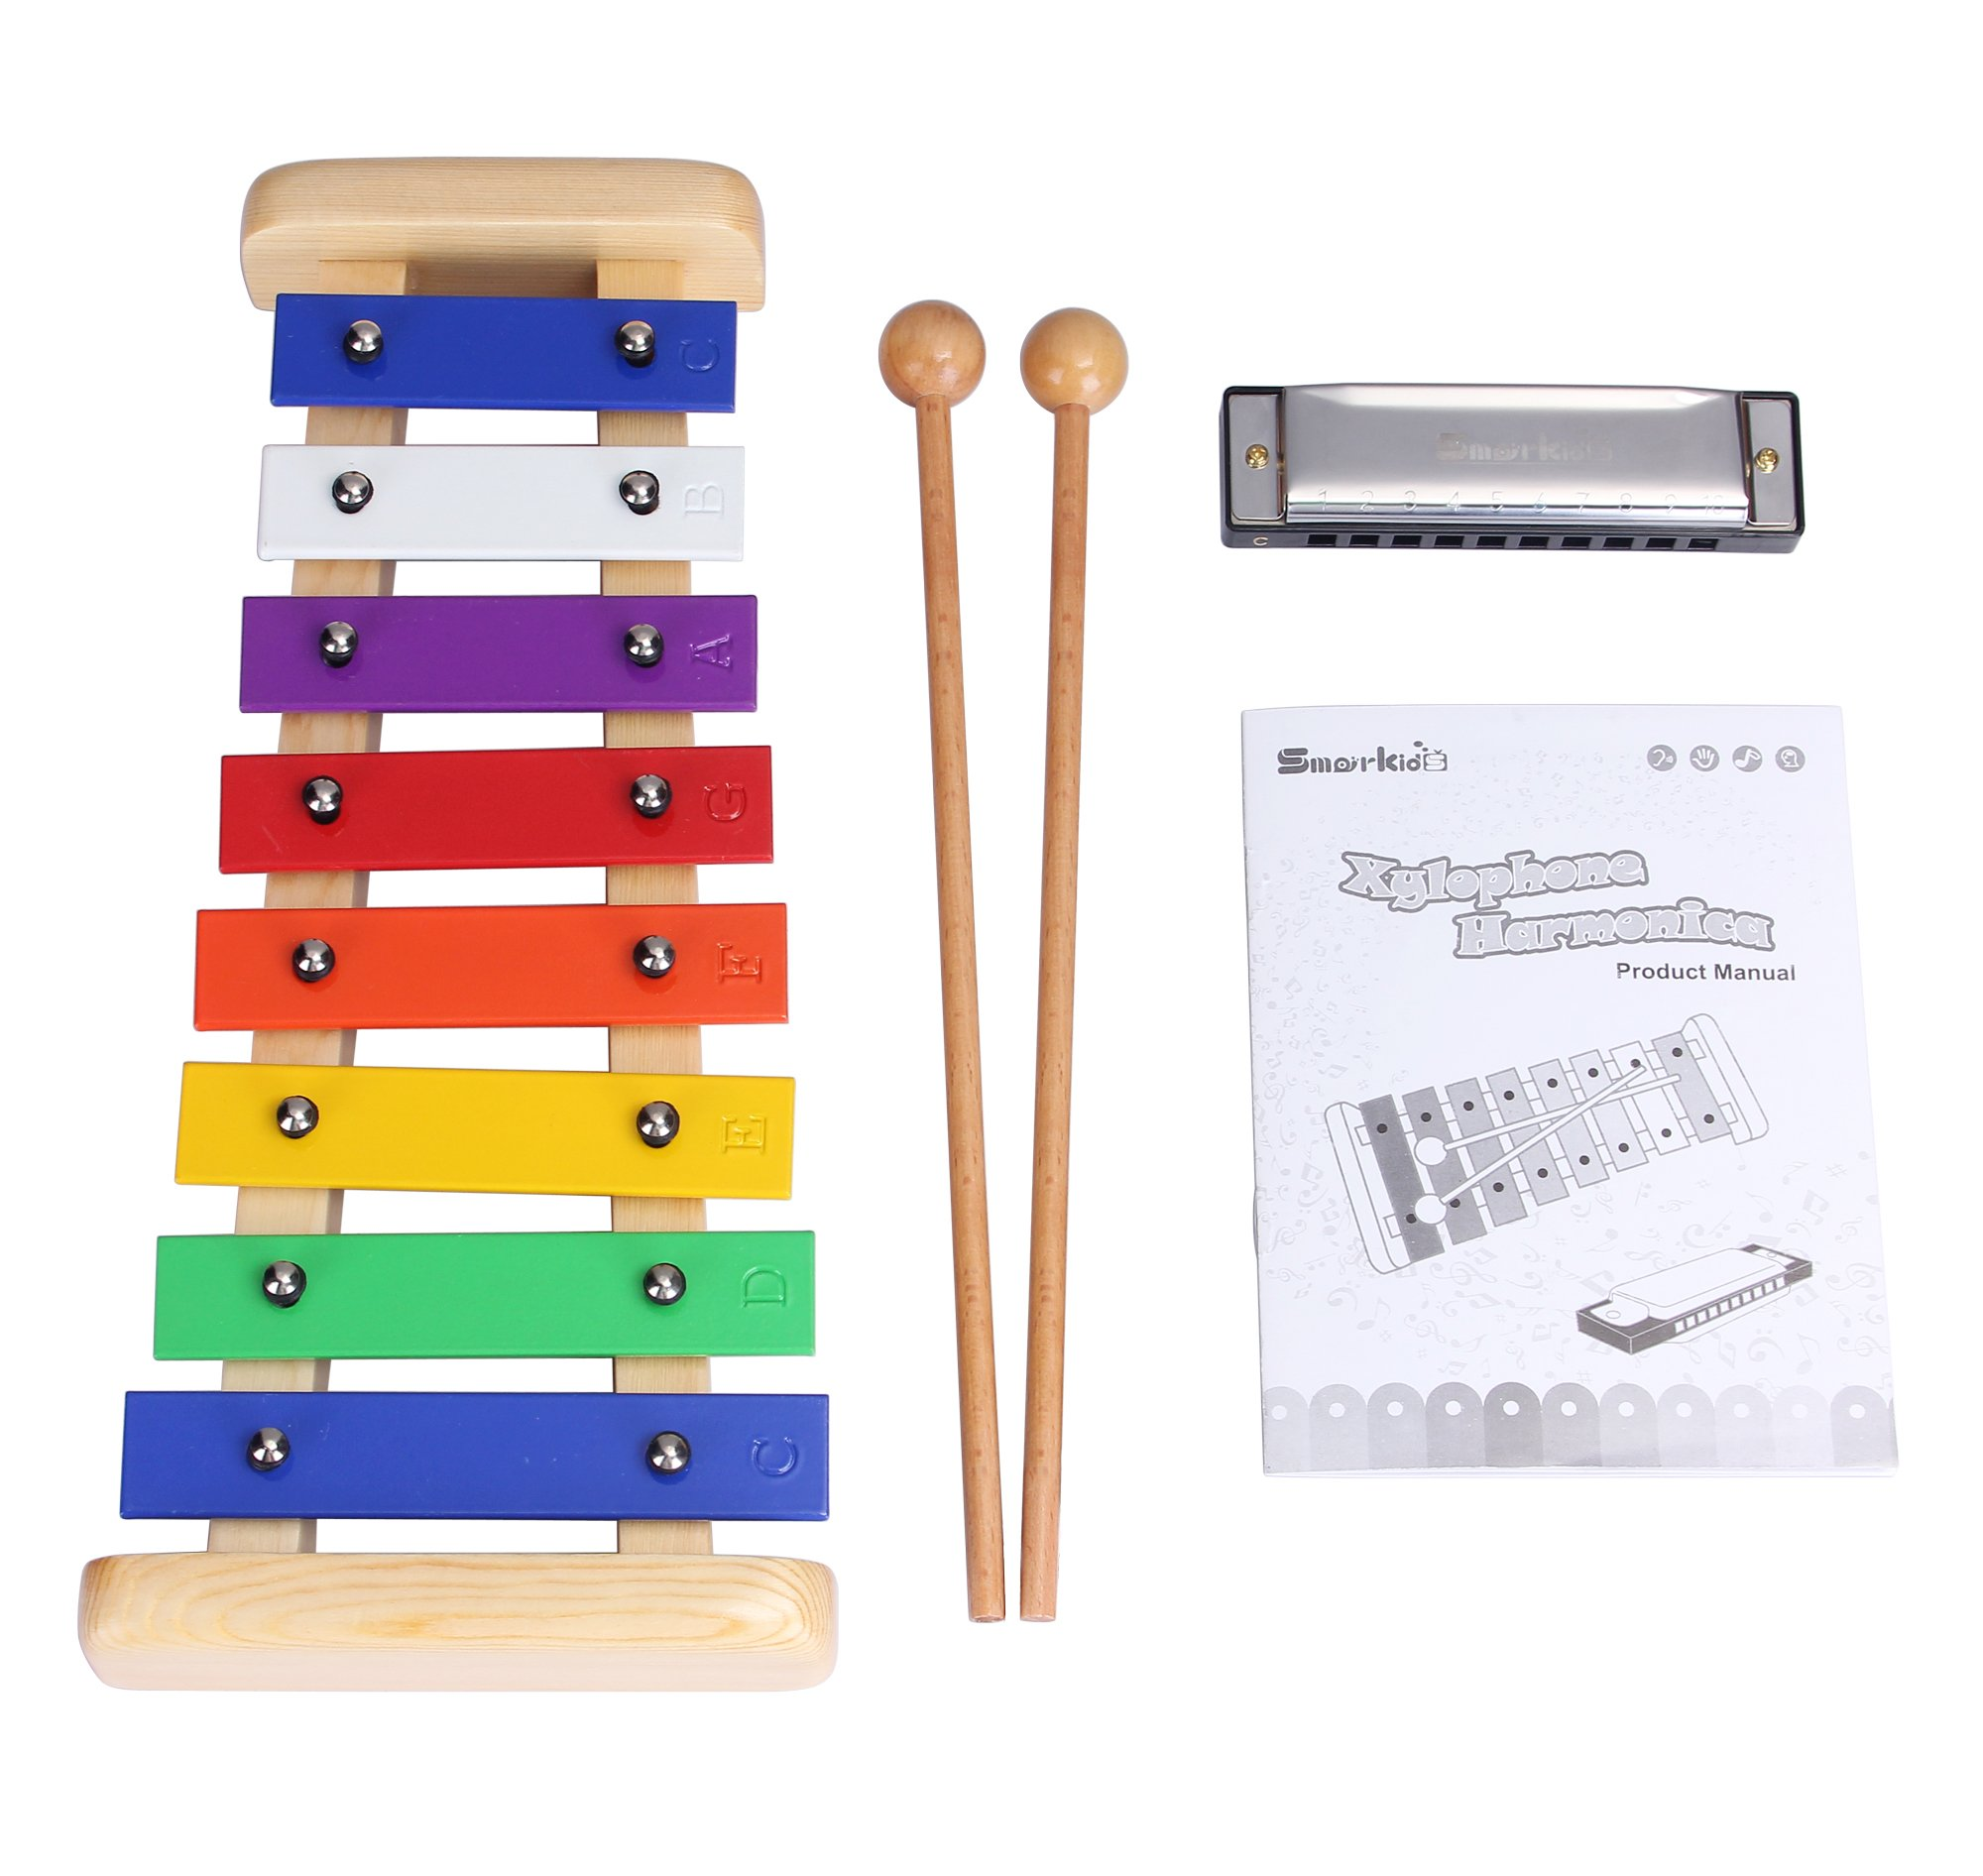 Smarkids Kids Xylophone Wooden Musical Toys Prime 8 Note Metal Keys Glockenspiel and Harmonica Instruments Set with Song Sheet for Toddler, Children, Boys and Girls with Xylophone Mallets by Smarkids (Image #7)